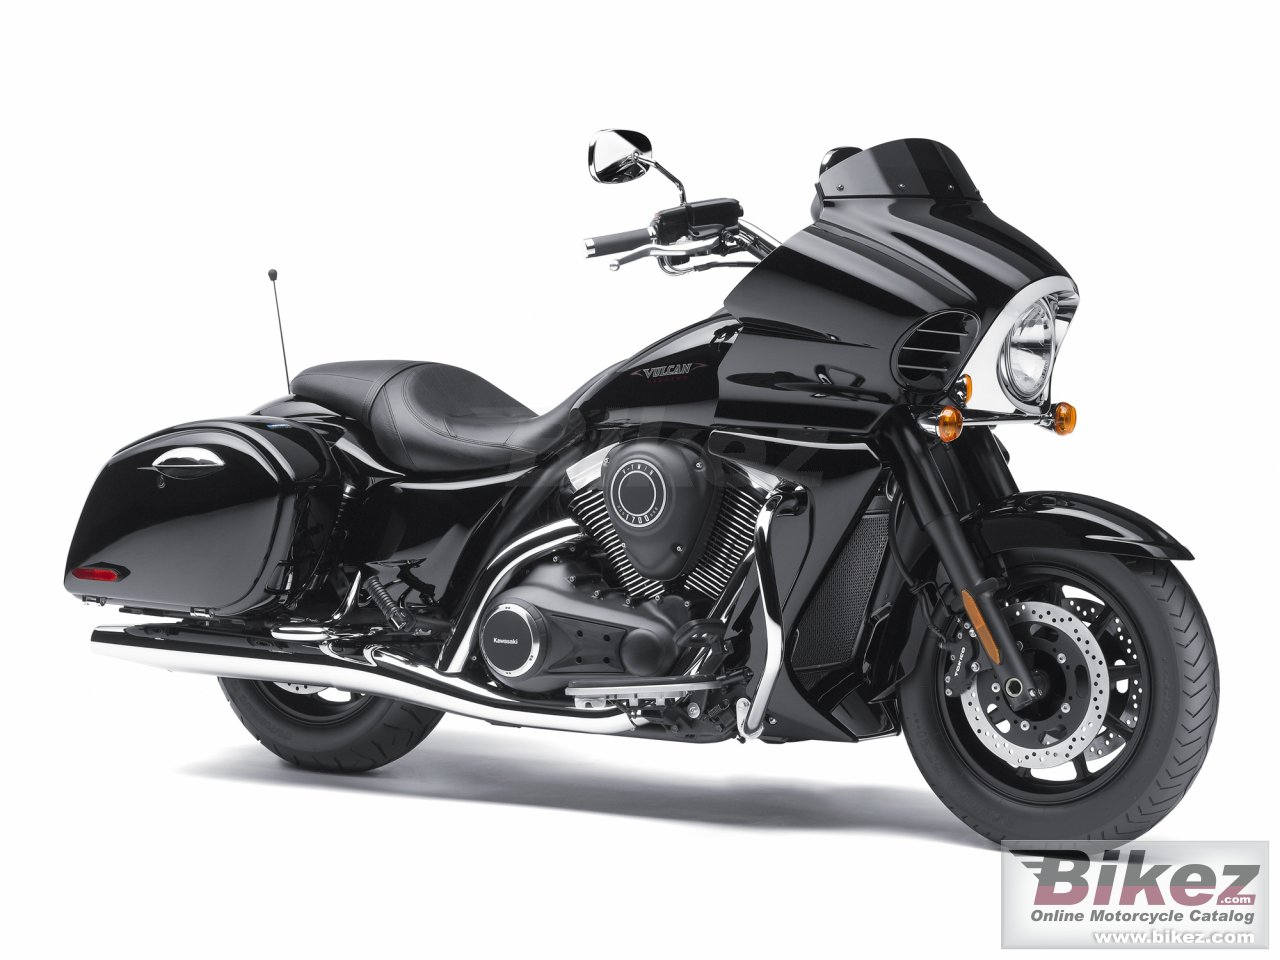 Big Kawasaki vulcan 1700 vaquero picture and wallpaper from Bikez.com